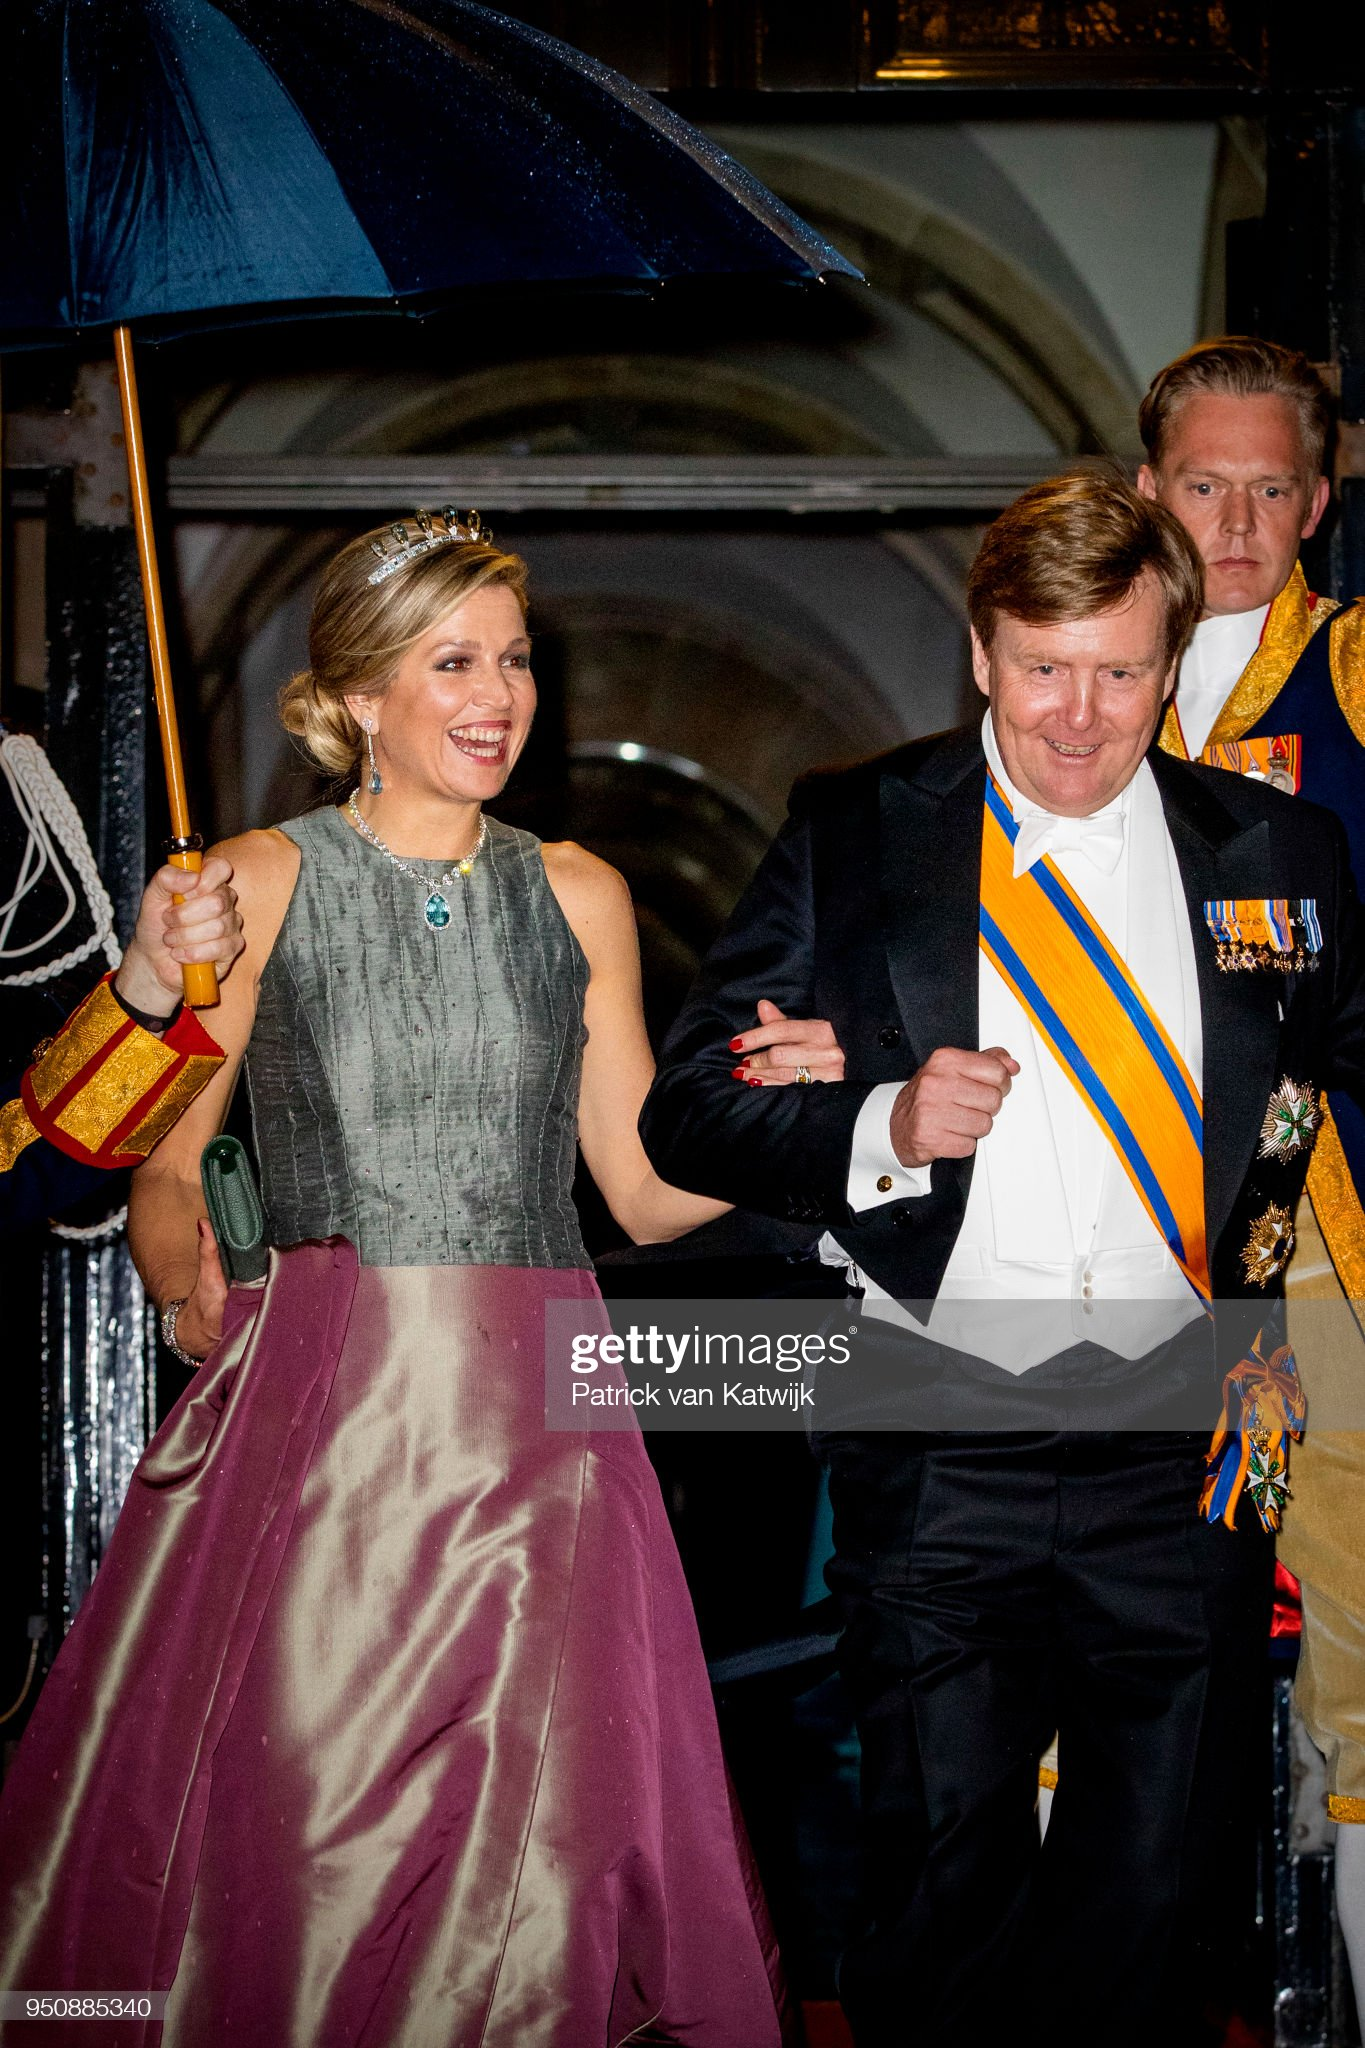 Dutch royals at gala diner Corps diplomatique at royal palace Amsterdam : News Photo